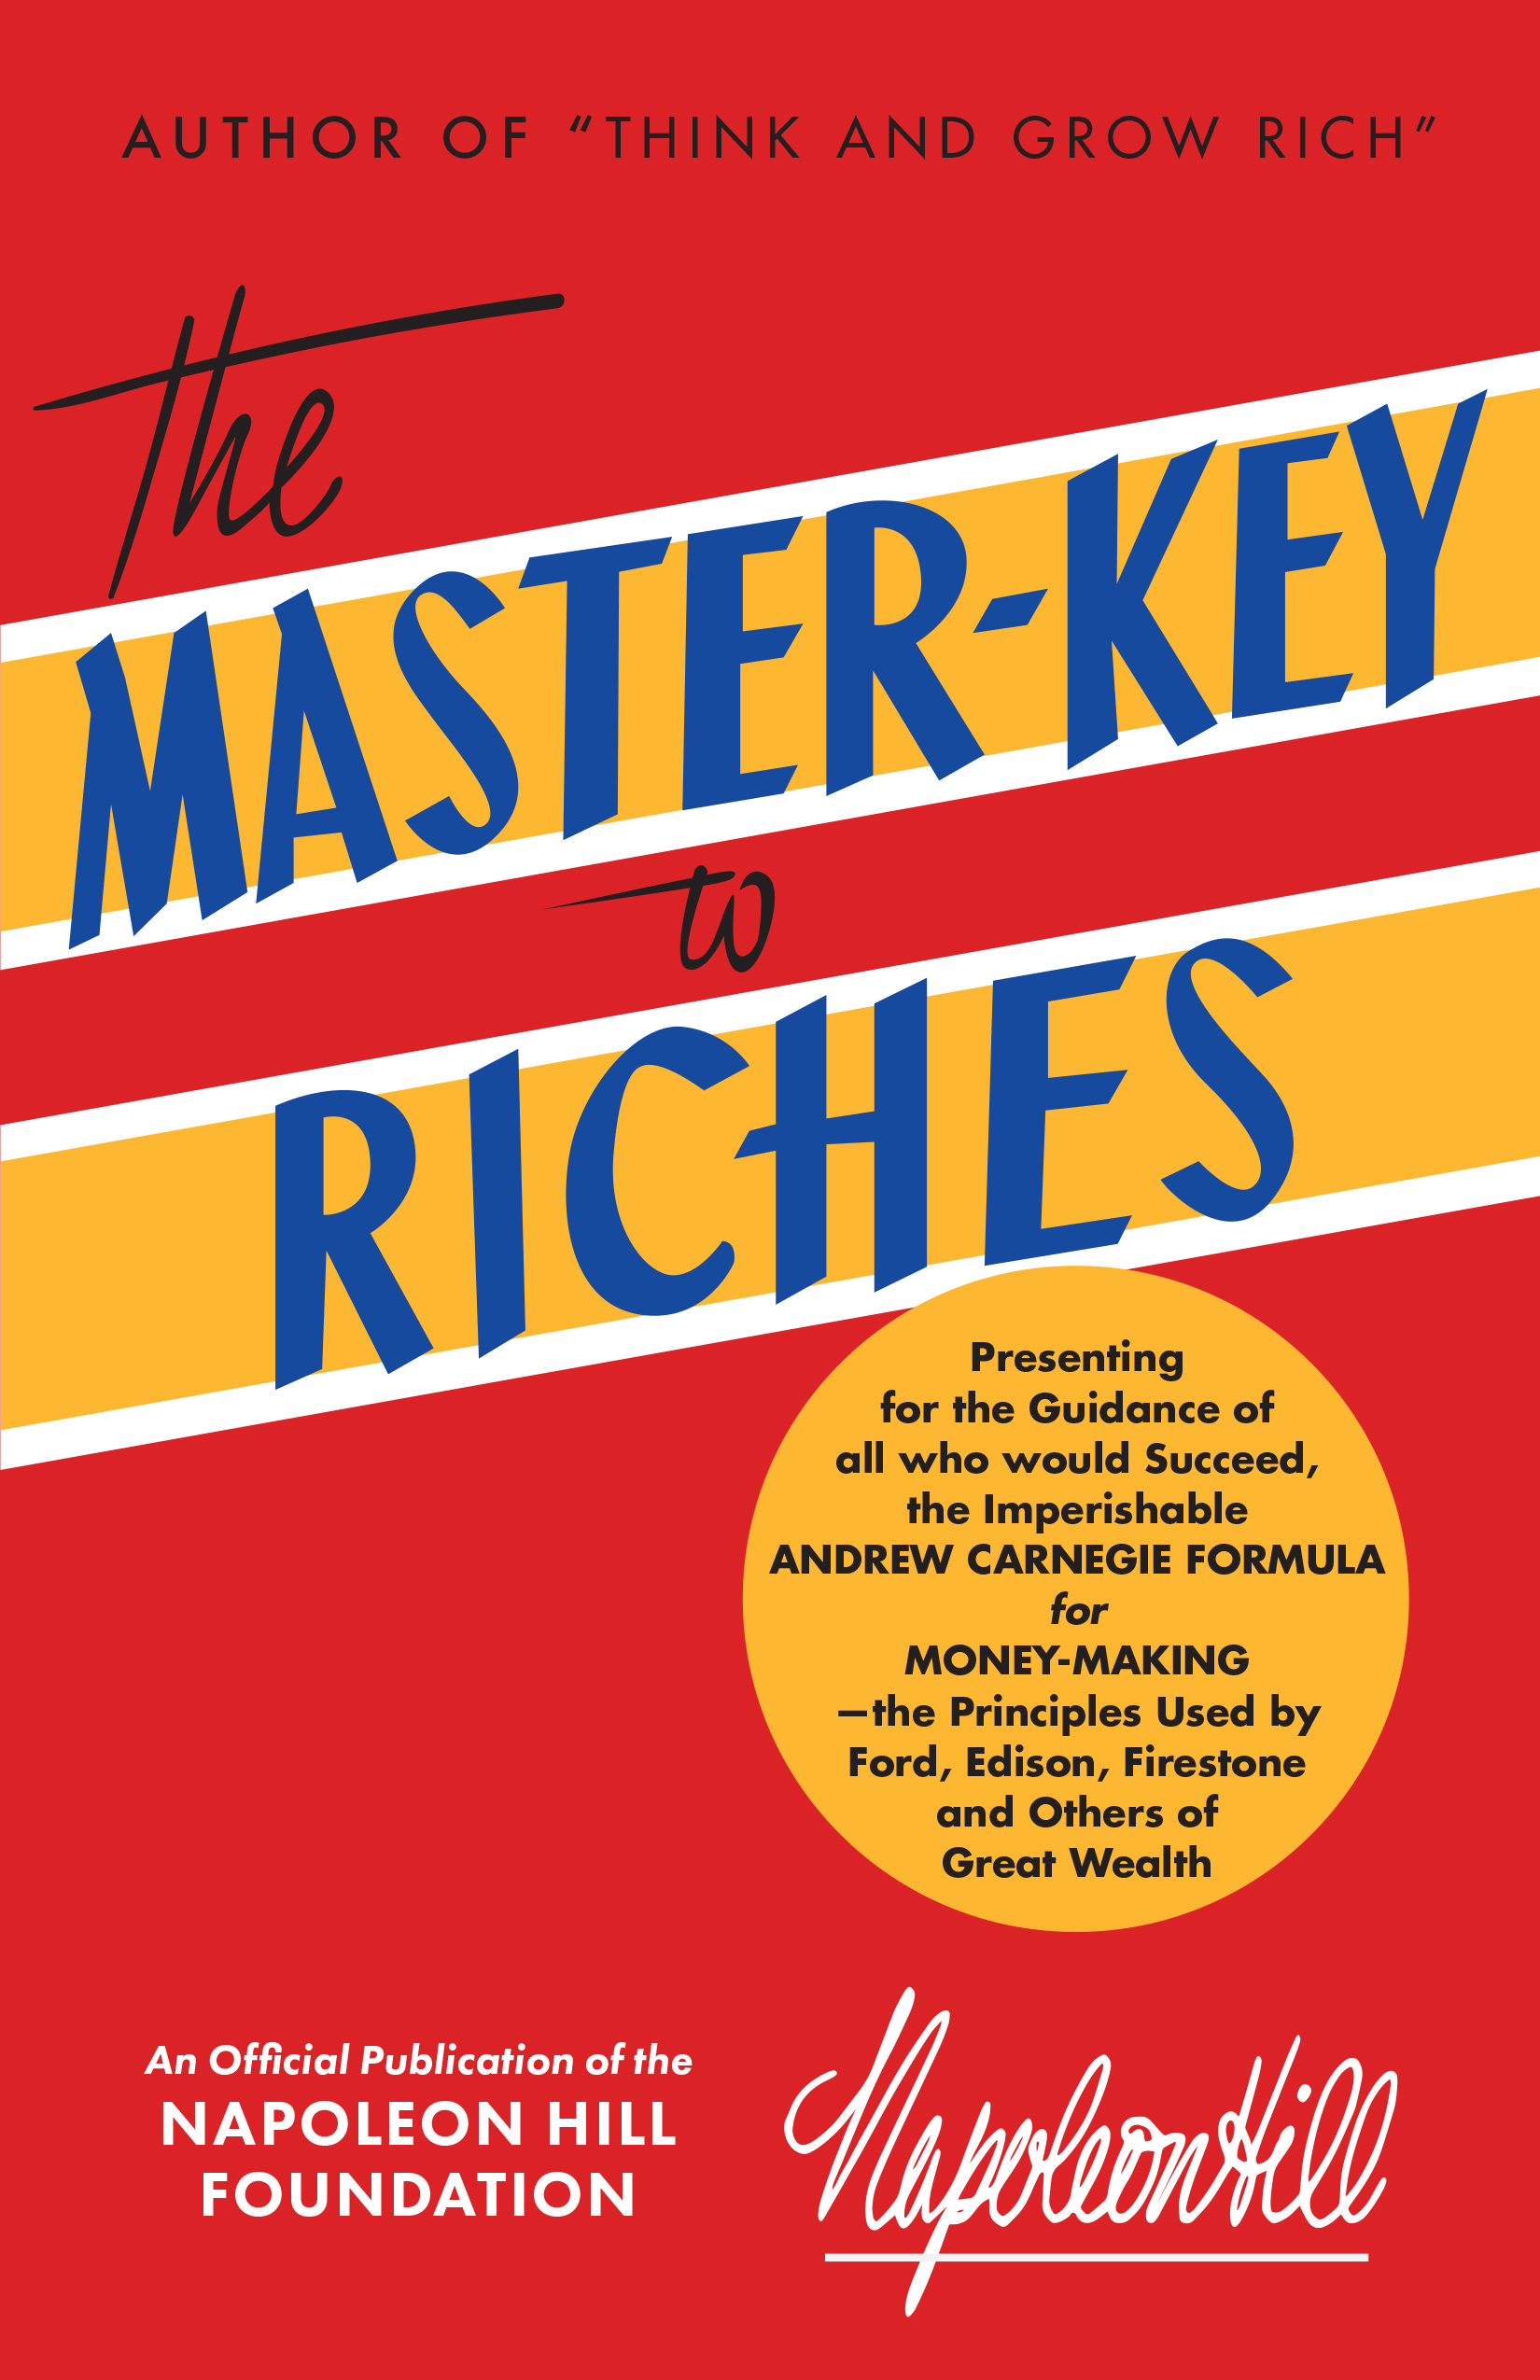 The Master-Key to Riches - By napoleon hill